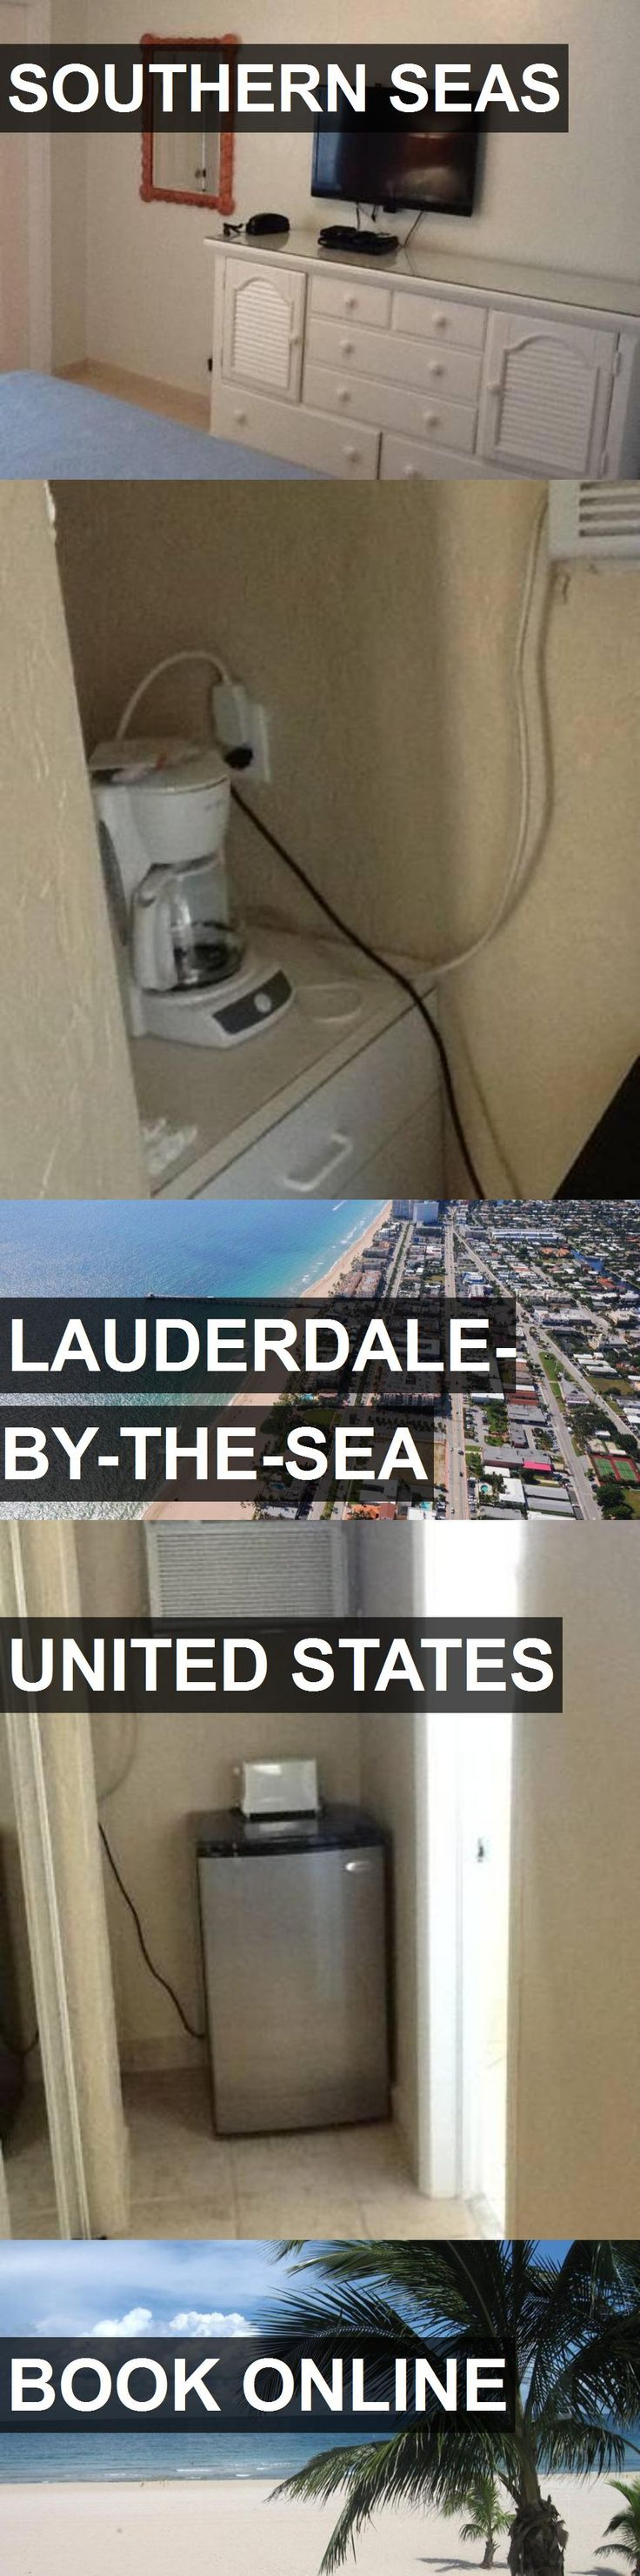 Hotel SOUTHERN SEAS in Lauderdale-By-The-Sea, United States. For more information, photos, reviews and best prices please follow the link. #UnitedStates #Lauderdale-By-The-Sea #travel #vacation #hotel